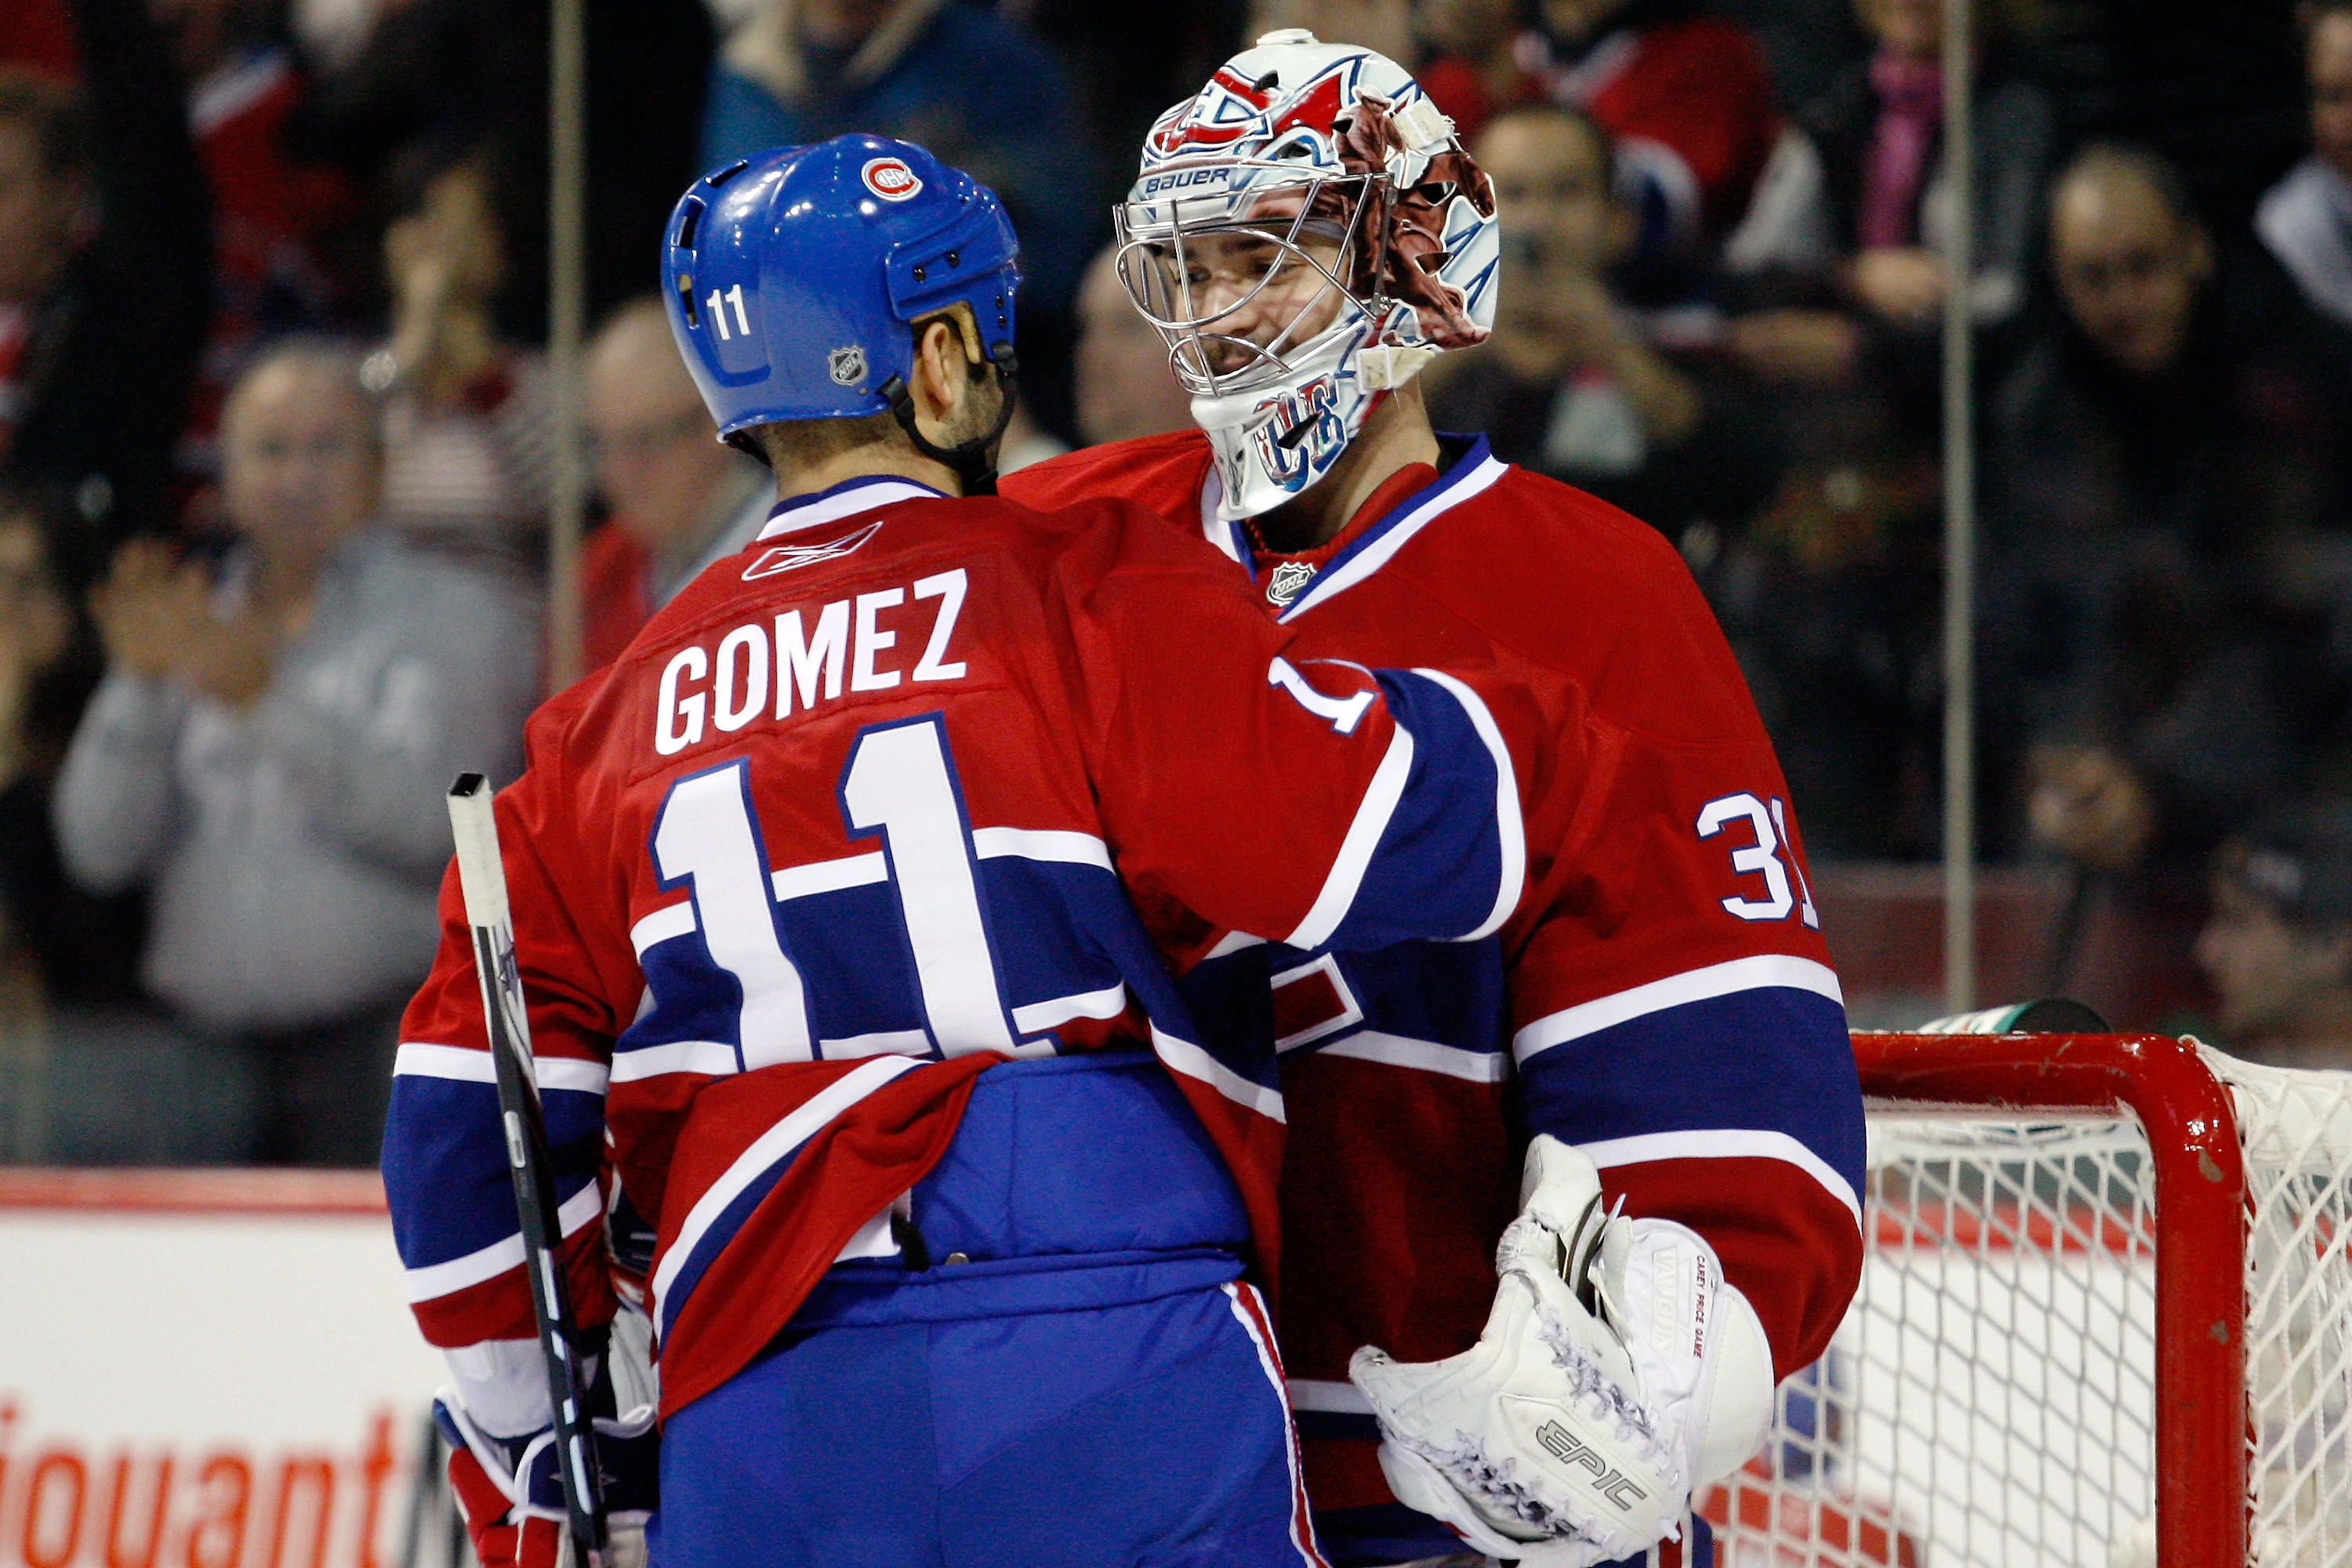 MONTREAL - NOVEMBER 20:  Scott Gomez #11 of the Montreal Canadiens congratulates teammate goalie Carey Price #31 on his shutout victory over the Toronto Maple Leafs during the NHL game at the Bell Centre on November 20, 2010 in Montreal, Quebec, Canada.